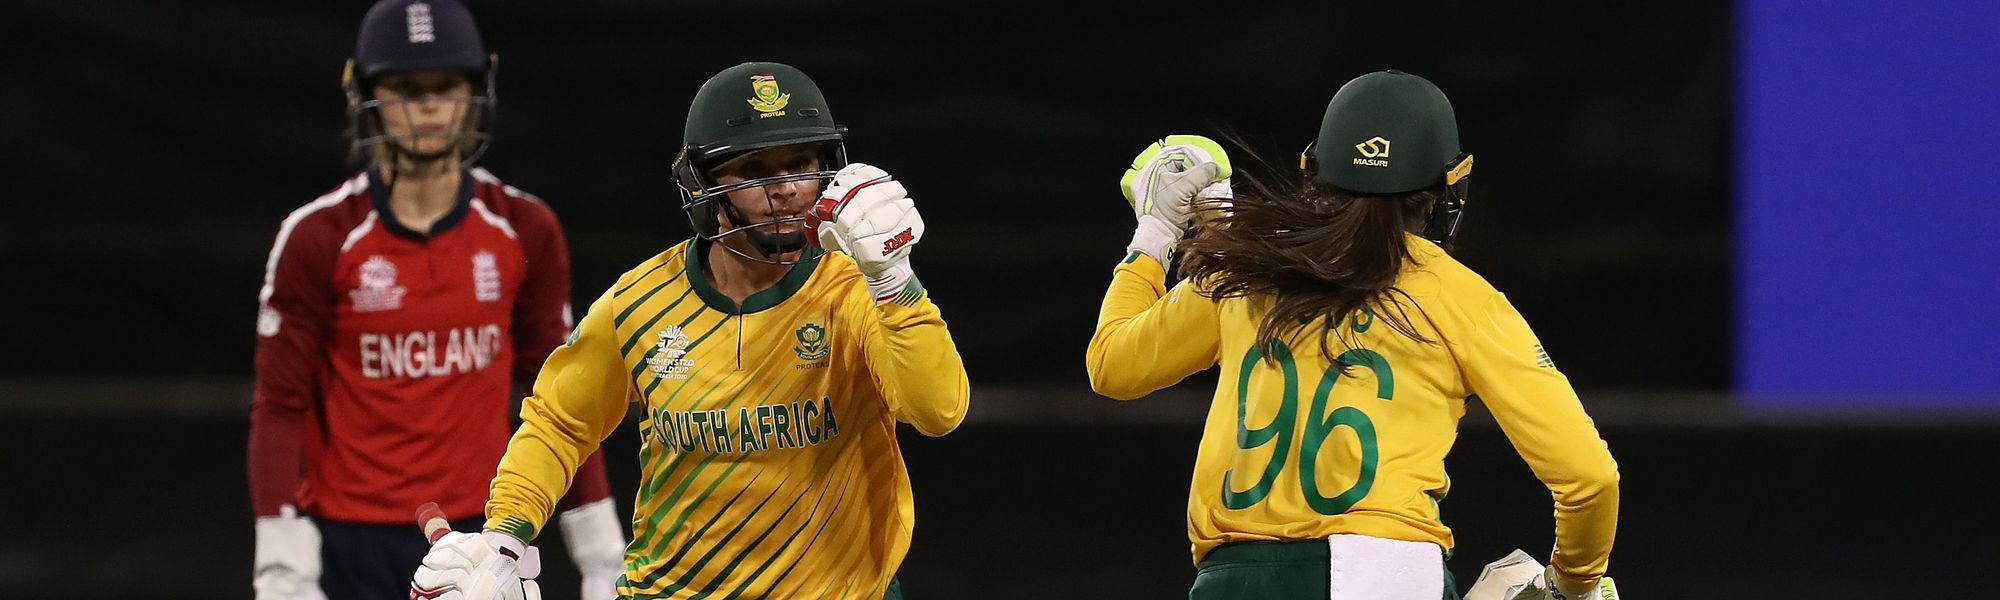 Mignon du Preez of South Africa and Sune Luus of South Africa celebrate after scoring the winning runs during the ICC Women's T20 Cricket World Cup match between England and South Africa at the WACA on February 23, 2020 in Perth, Australia.